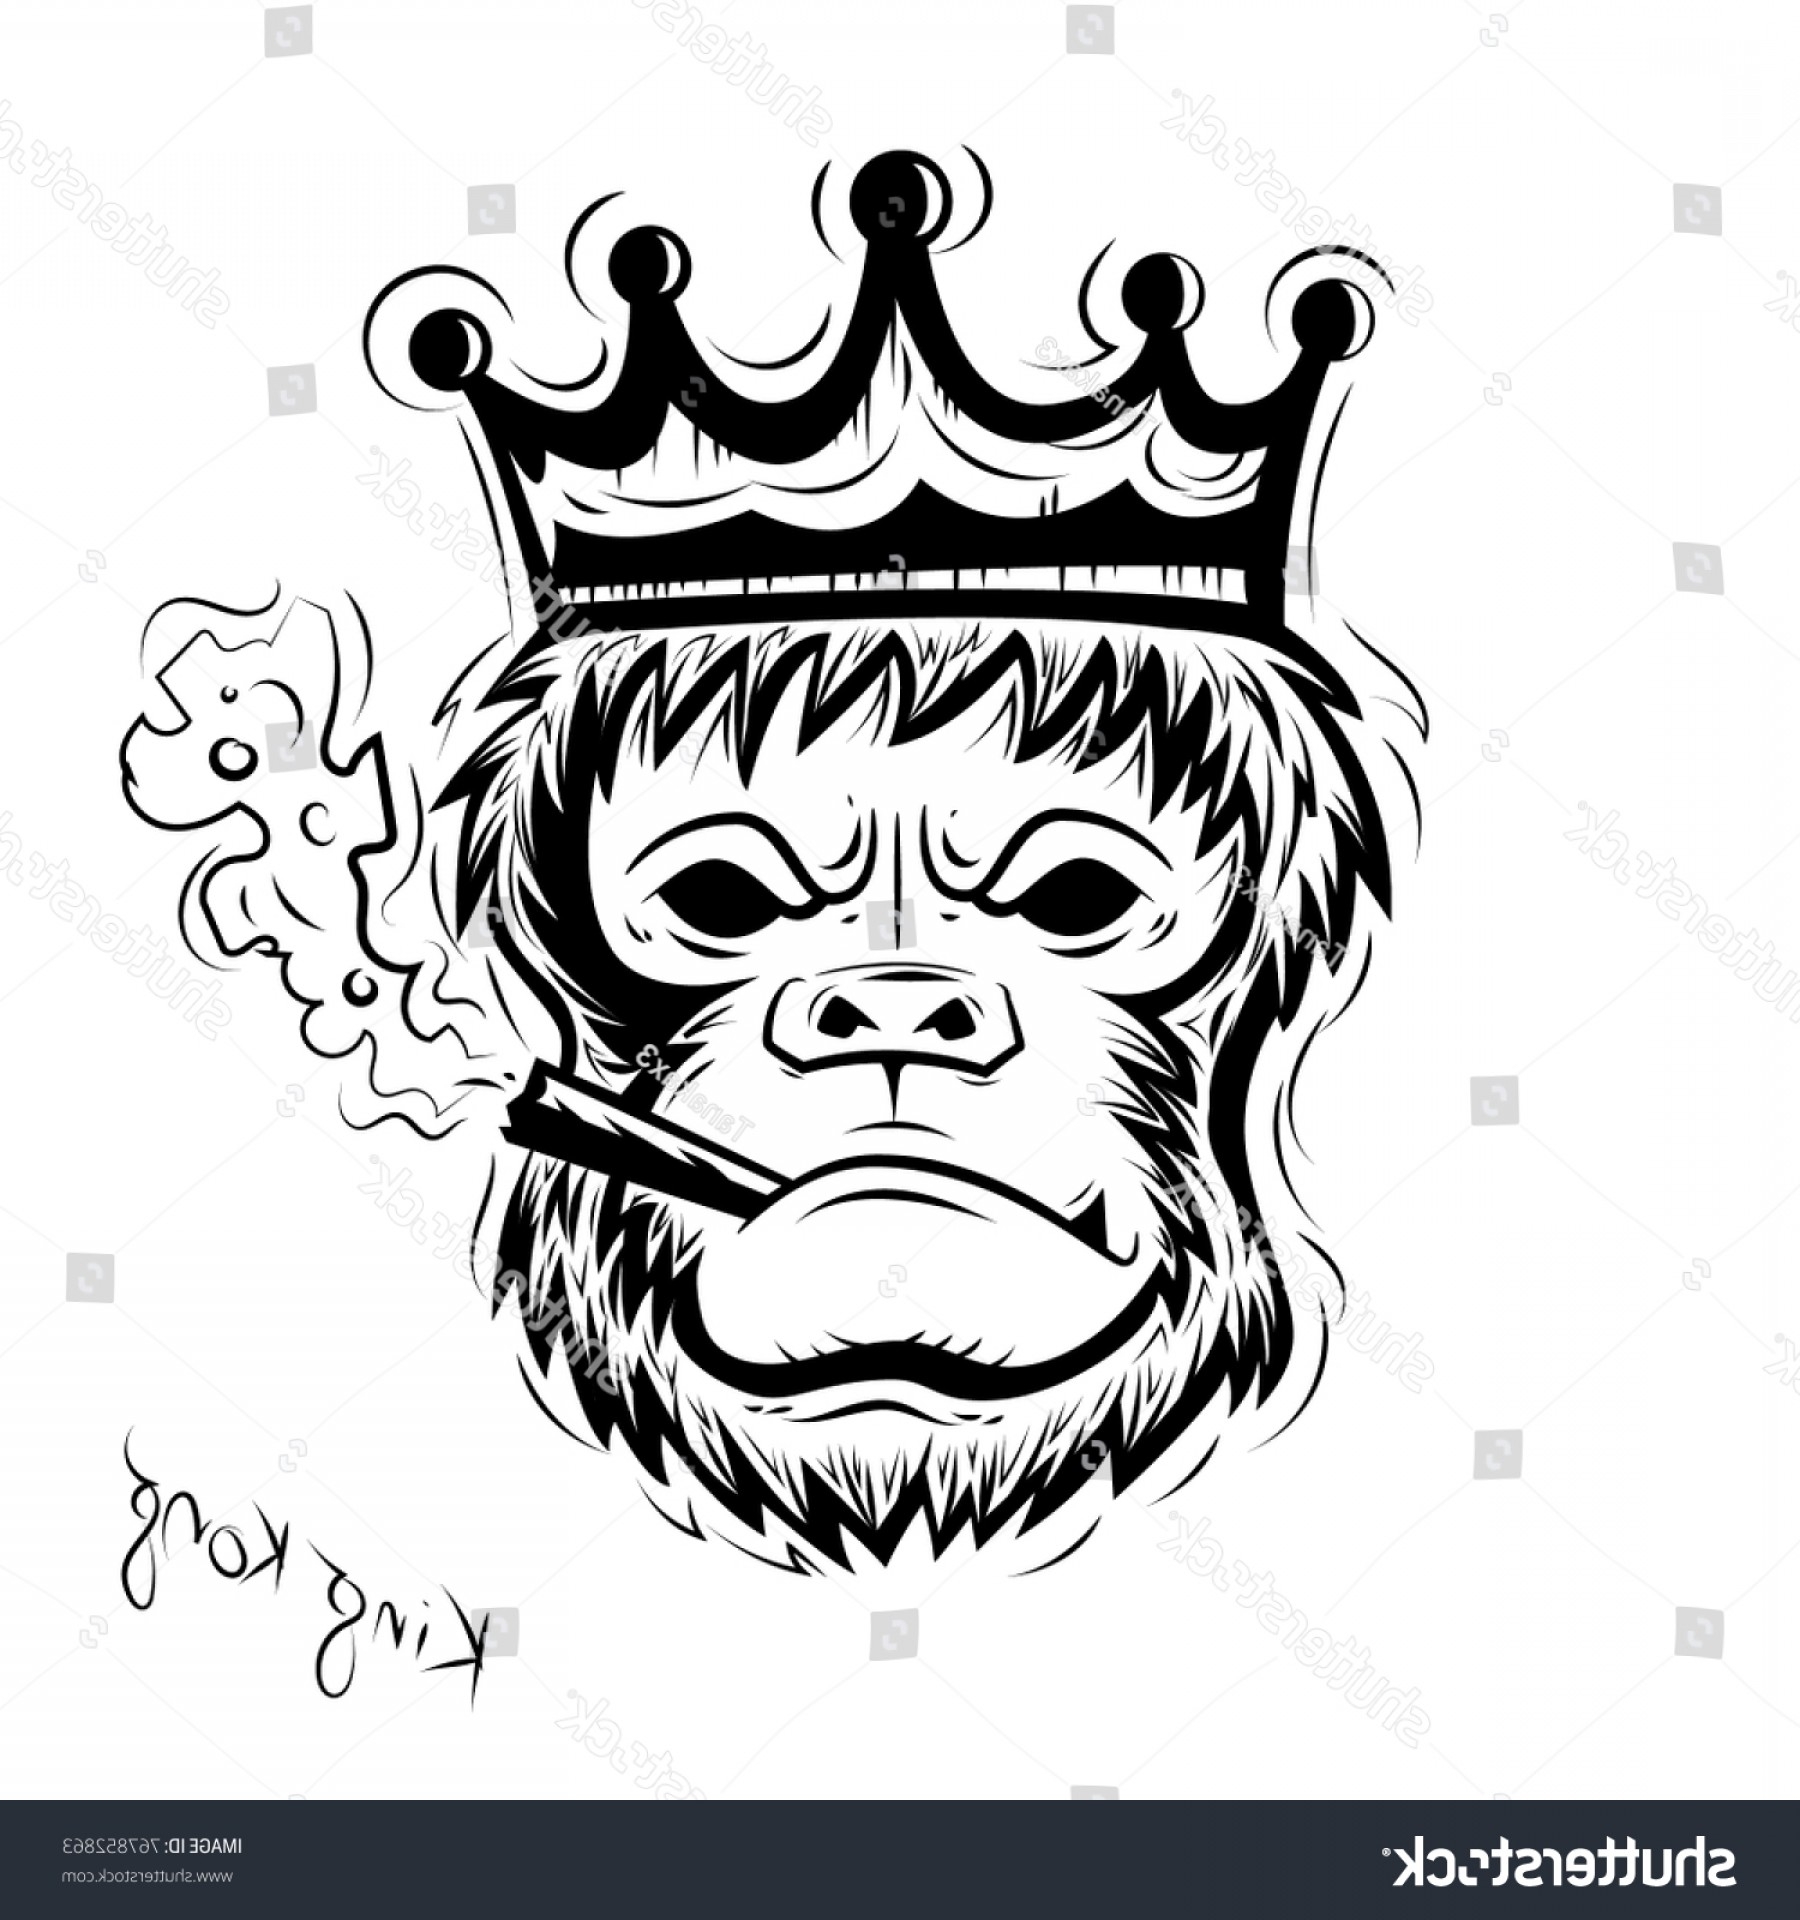 Drawings Of King Kong Vector: Gorilla Angry Wearing Crown Smokingvector Illustration